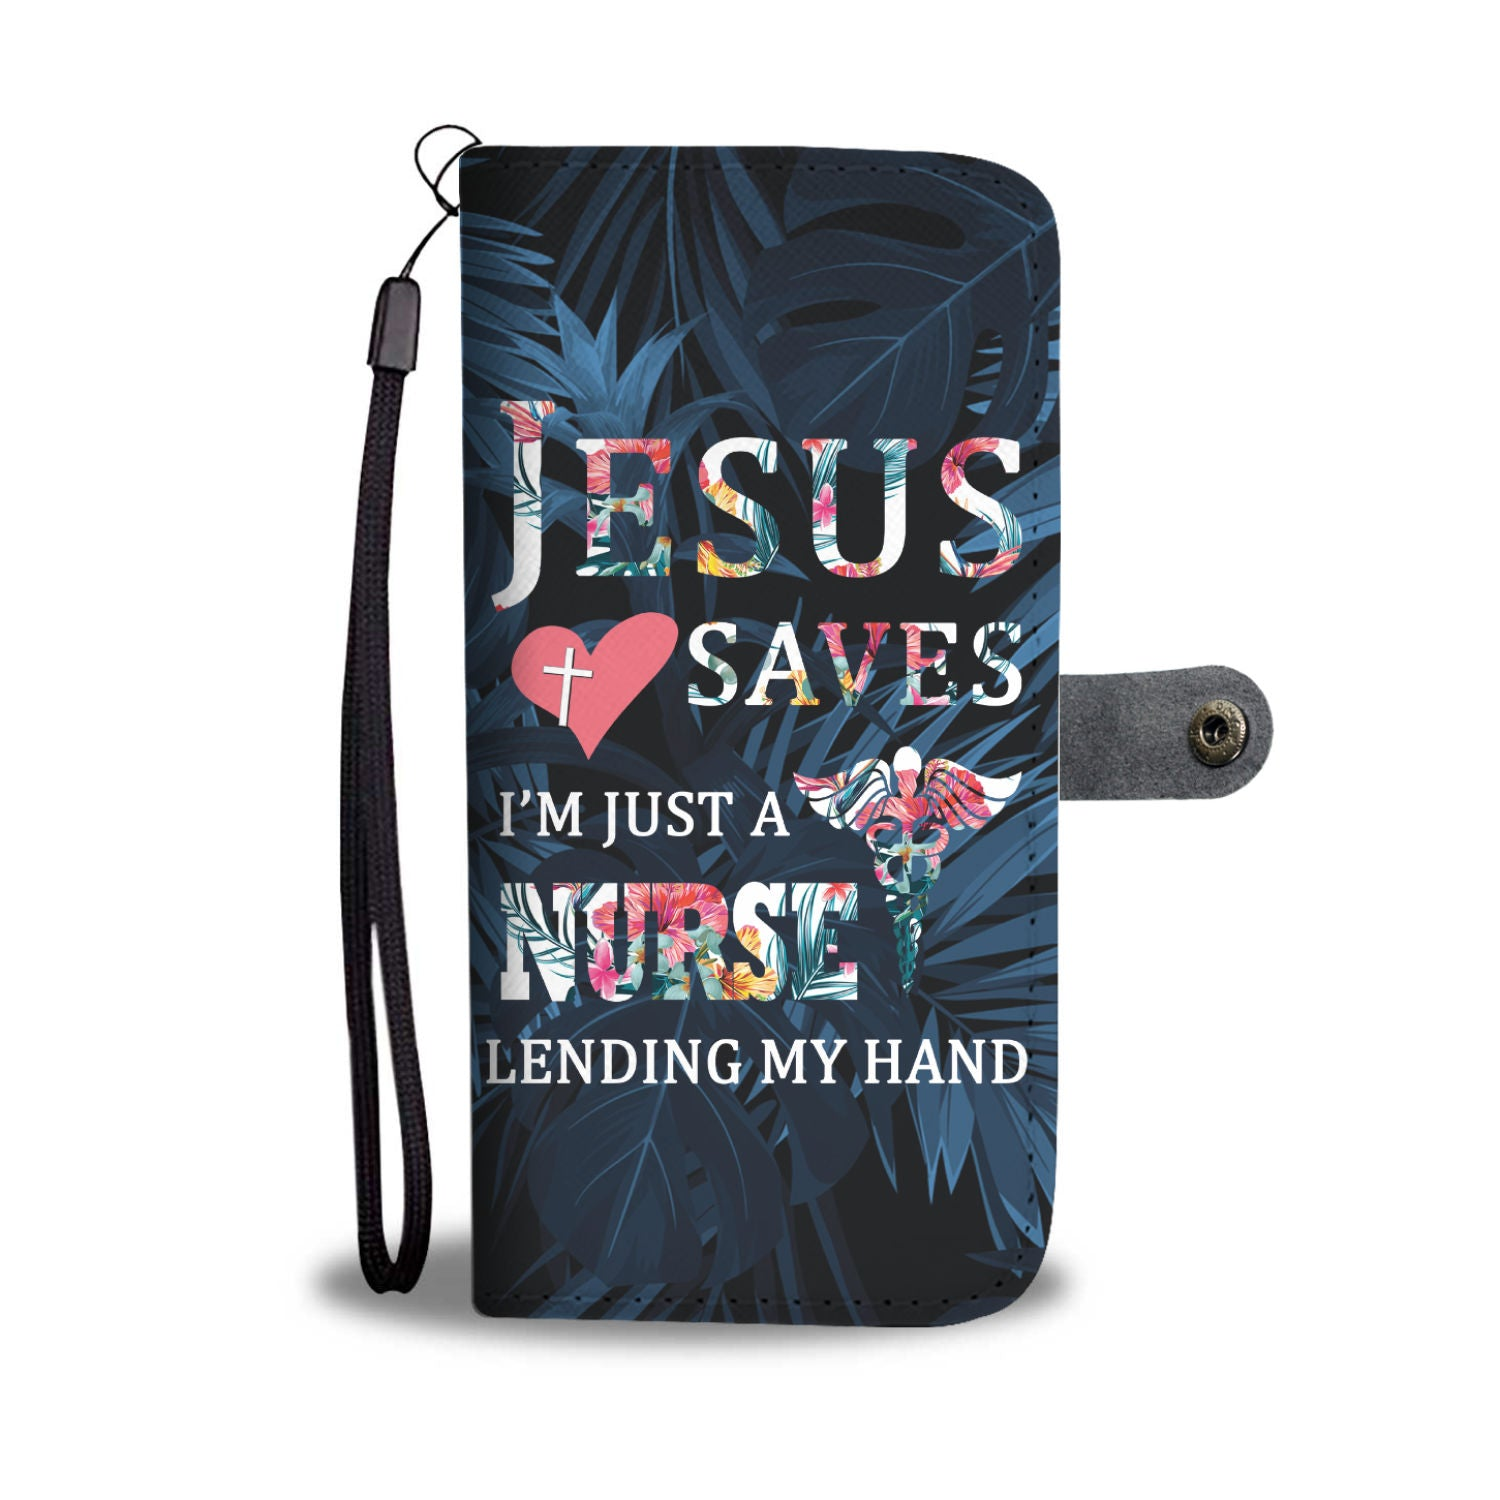 VIRA Awesome Wallet Case For Jesus Lovers & Great Nurses